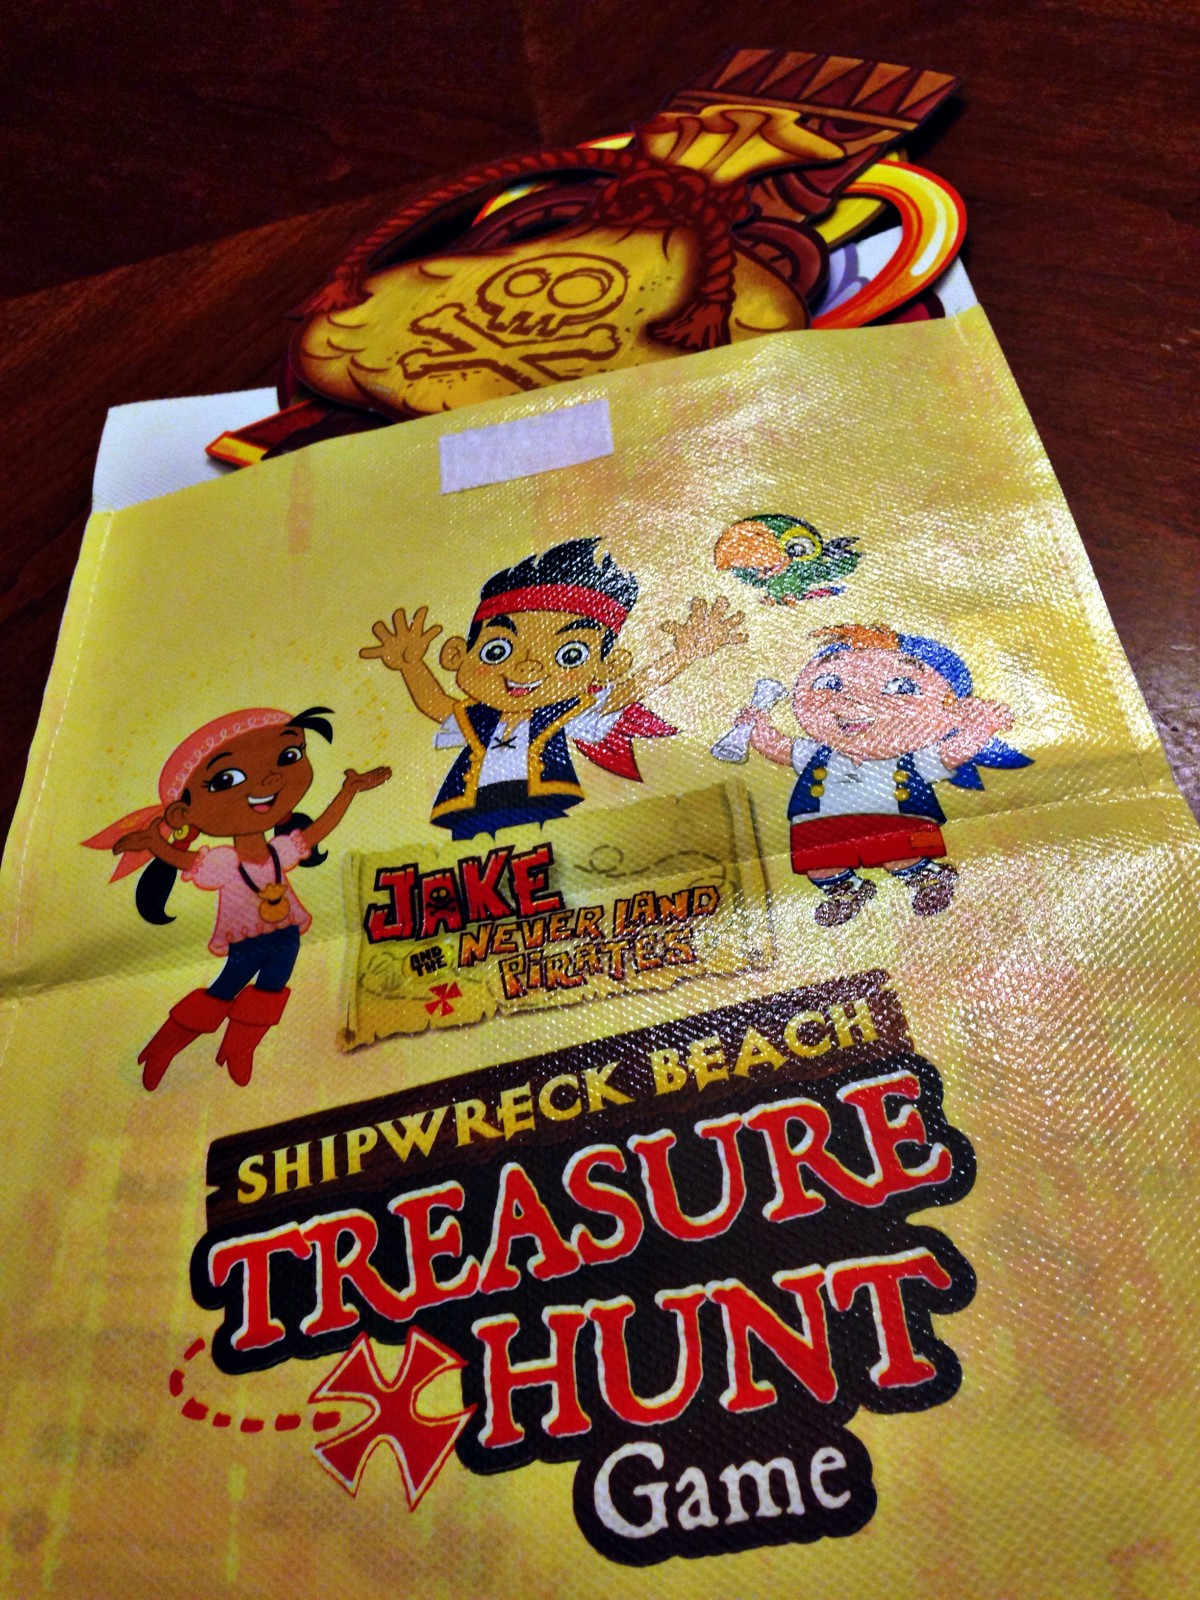 Jake and the Neverland Pirates Shipwreck Beach Treasure Hunt